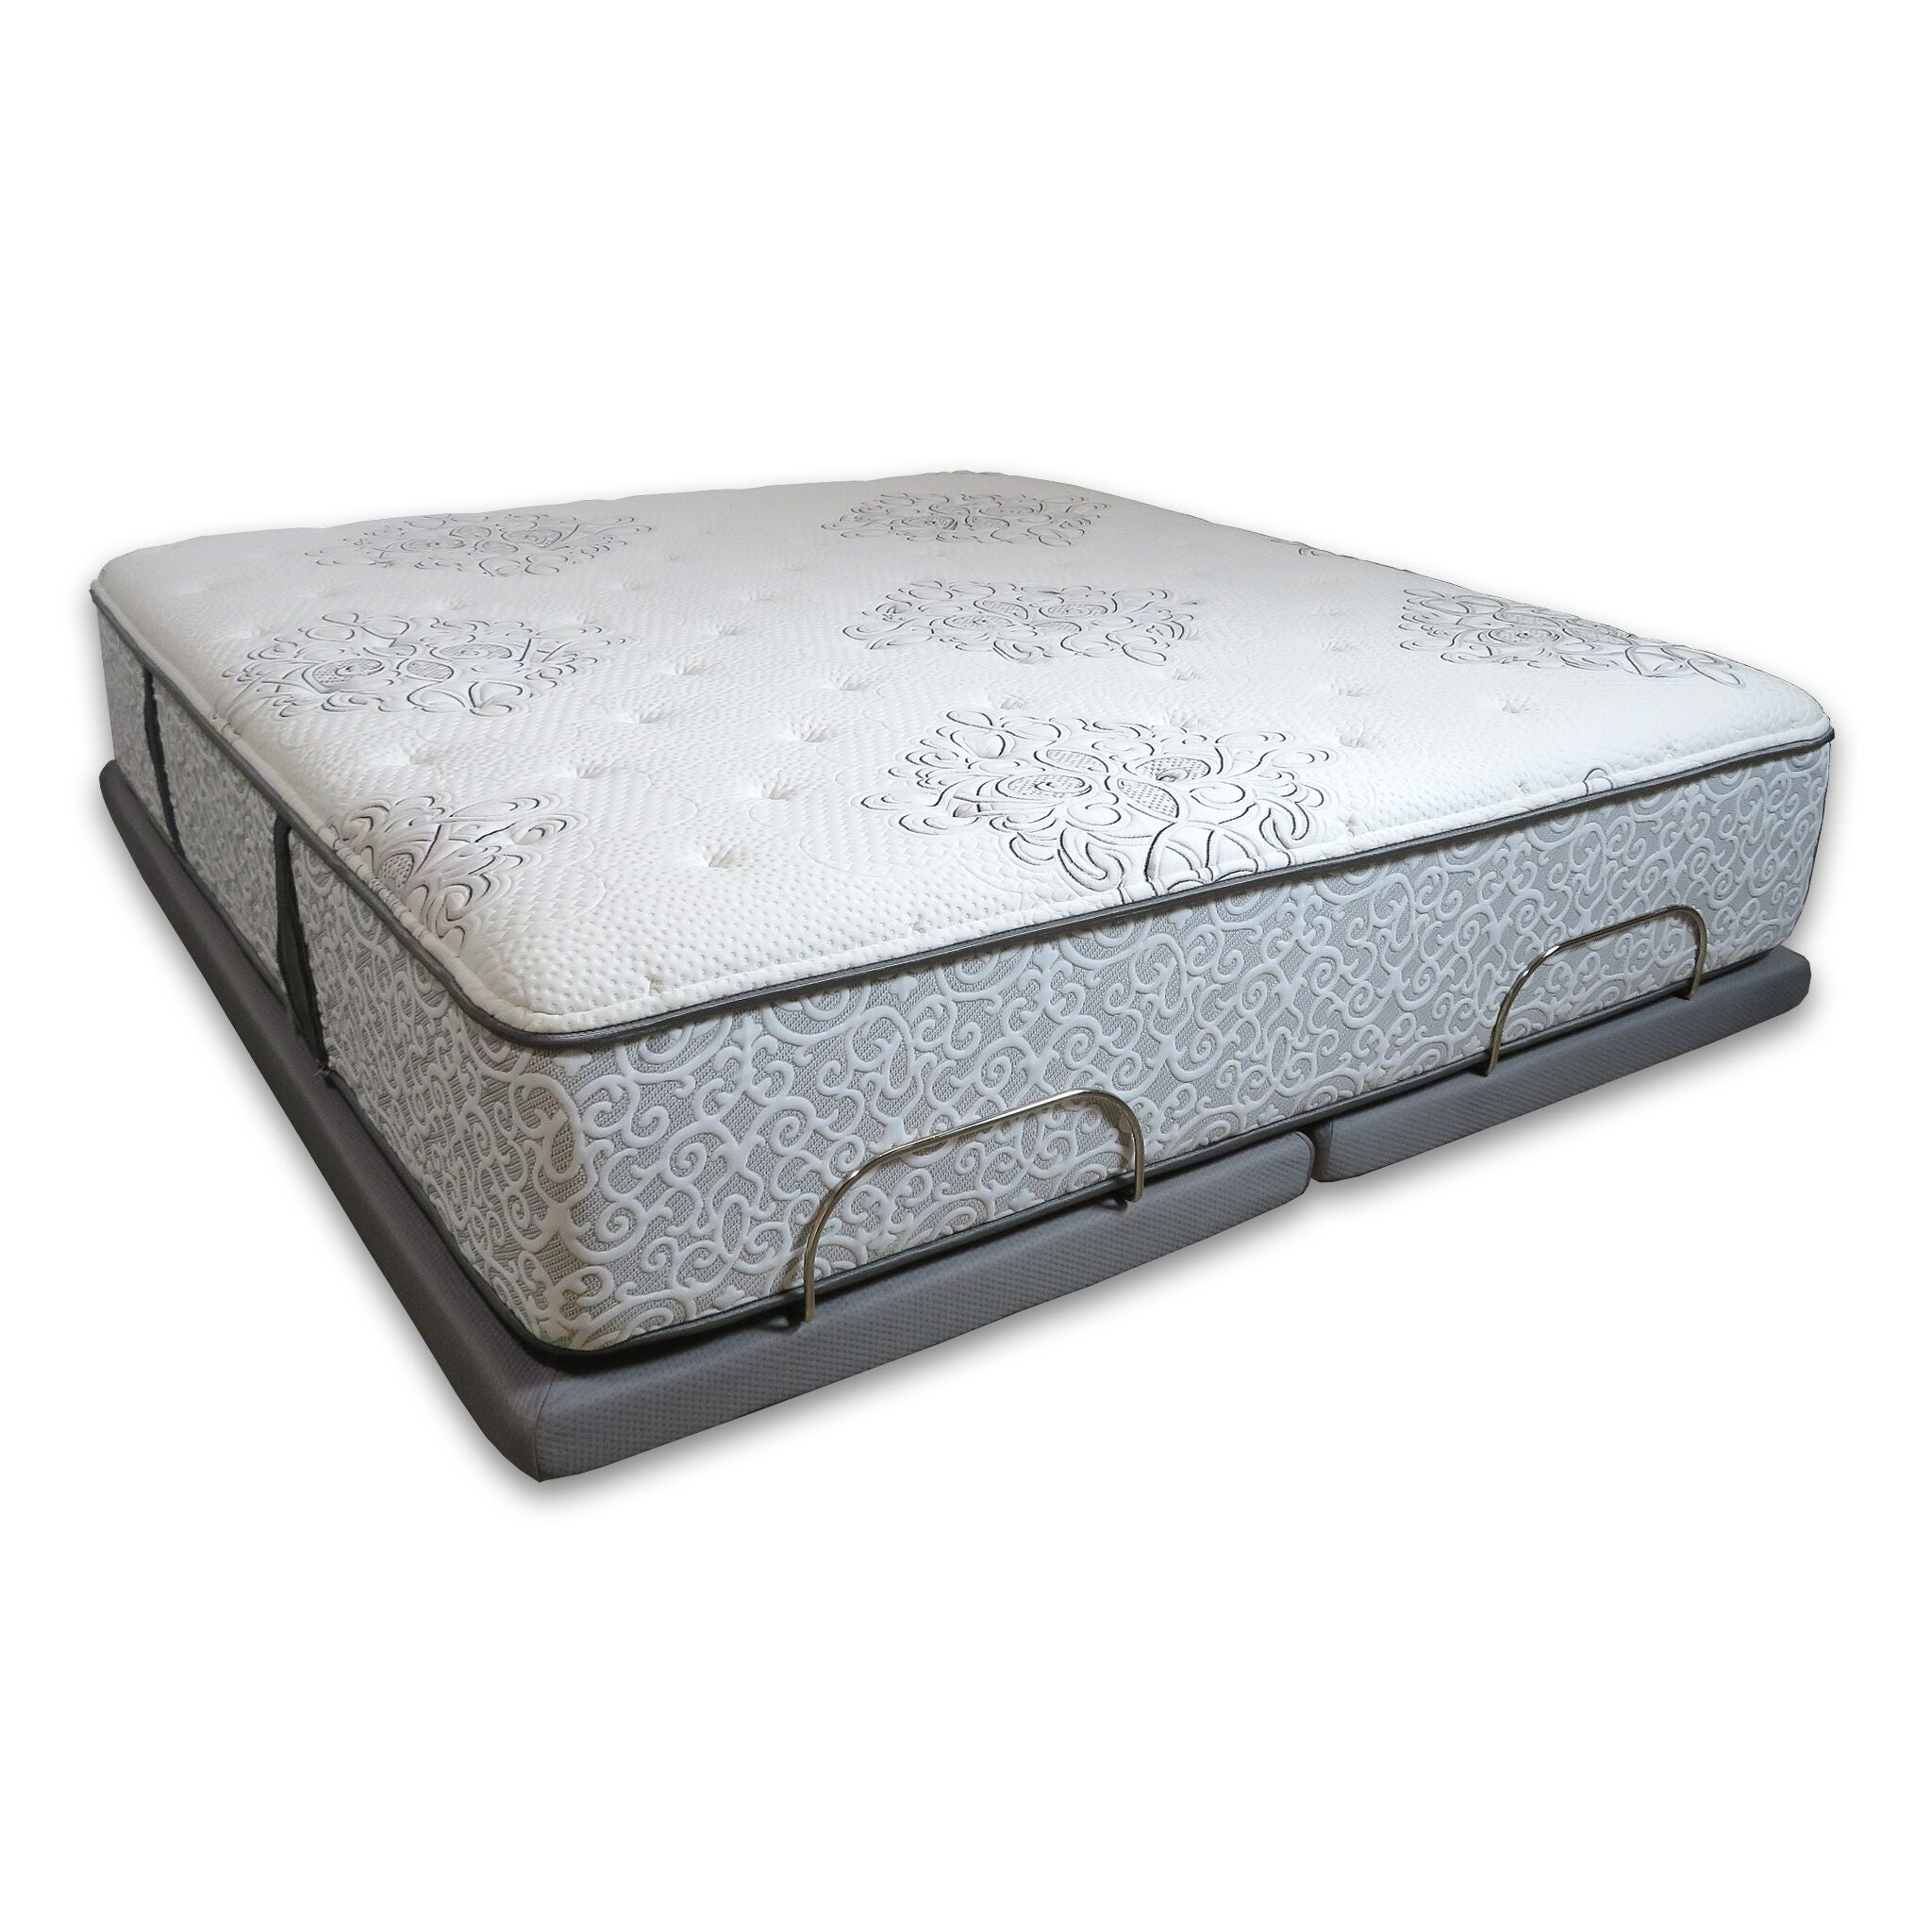 Queen Simmons Legend Mattress + Queen Adjustable Base - PACKAGE DEAL